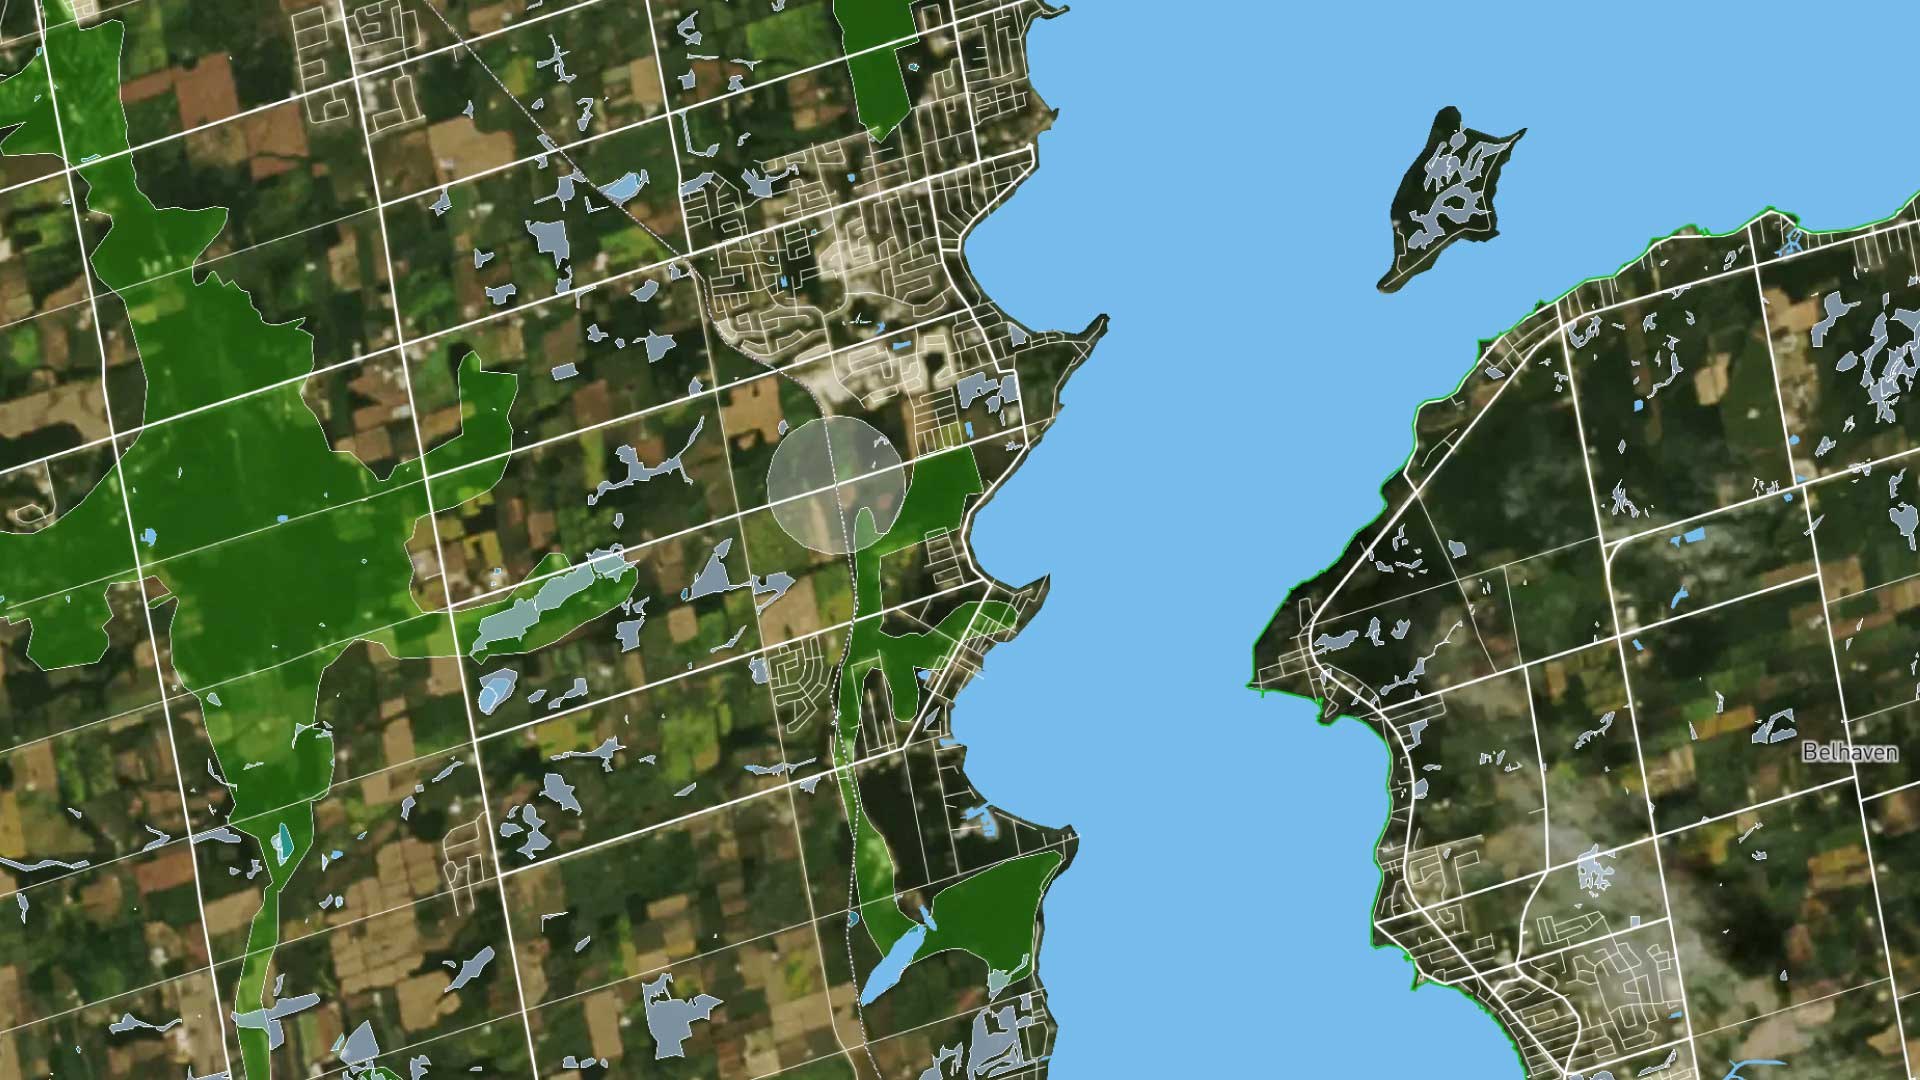 A map view of where The Orbit is proposed to be built. Natural features are overlaid.